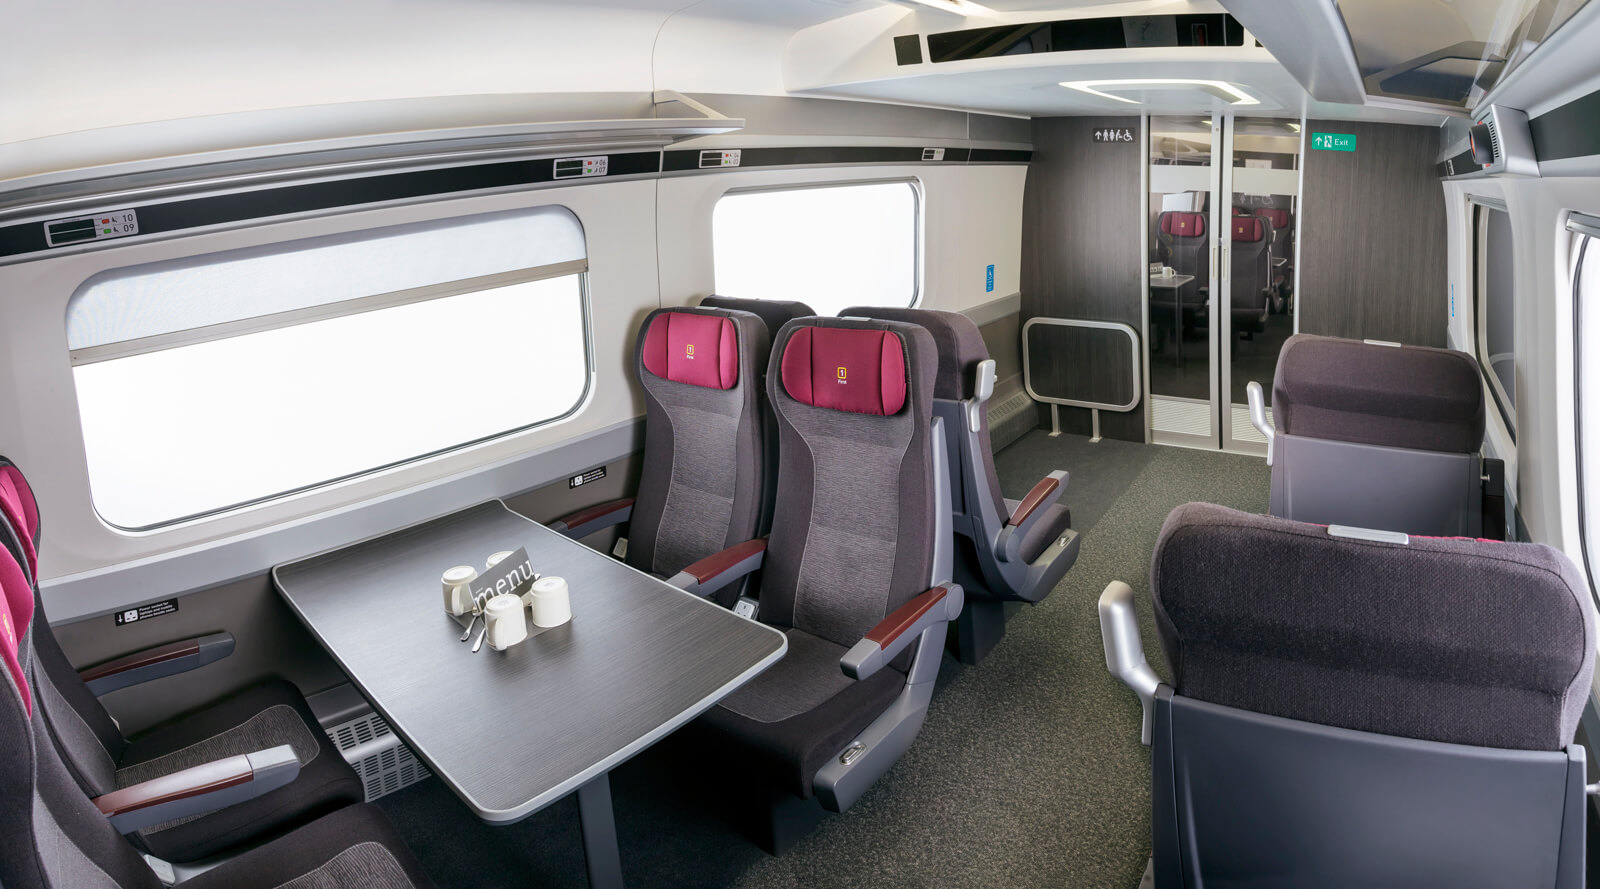 Hitachi Europe - Intercity Express cab and carriage mock-up